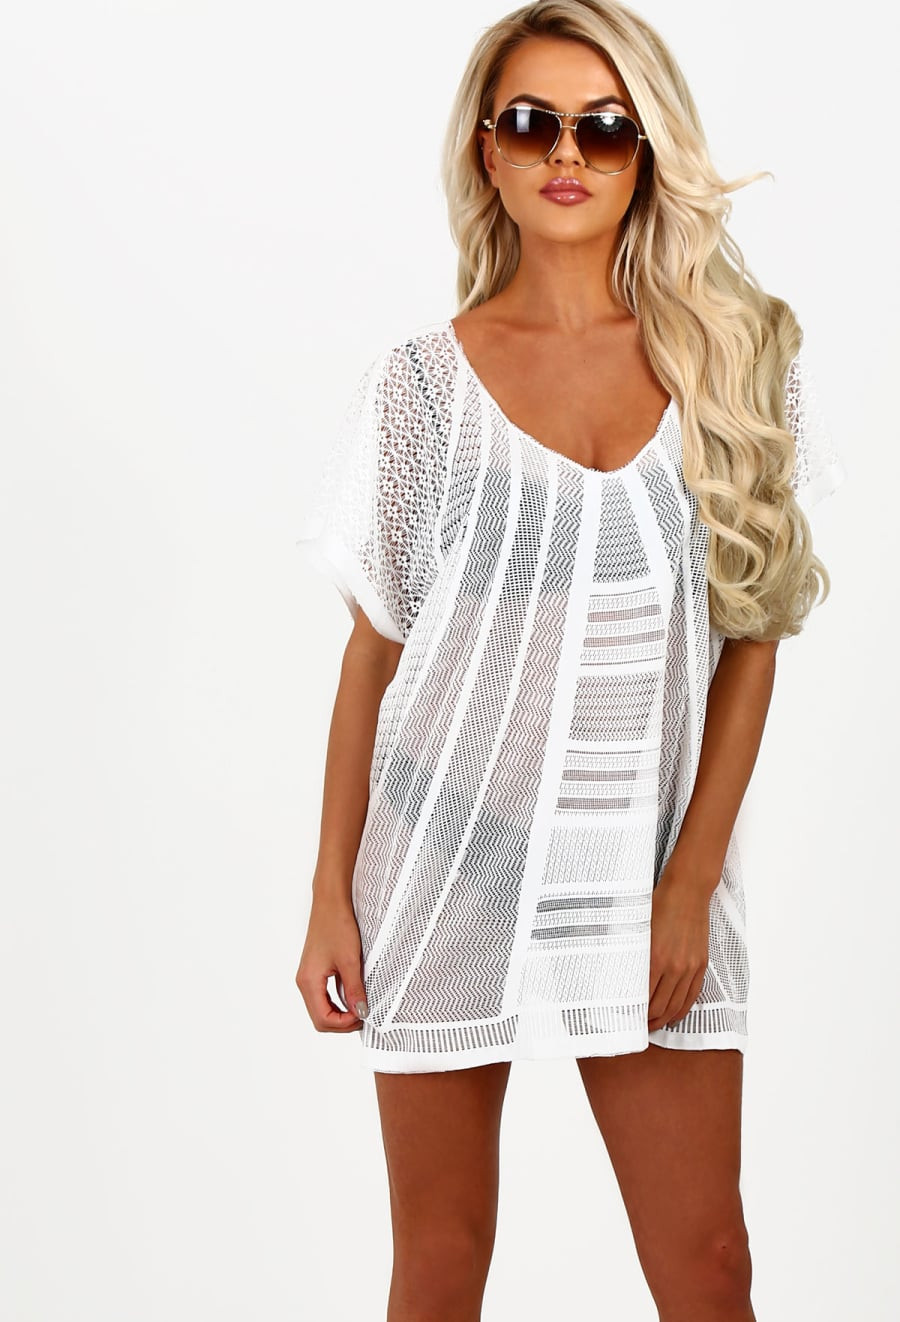 White Crochet Coverup Elegant Paros White Crochet Beach Cover Up Of Unique 50 Models White Crochet Coverup